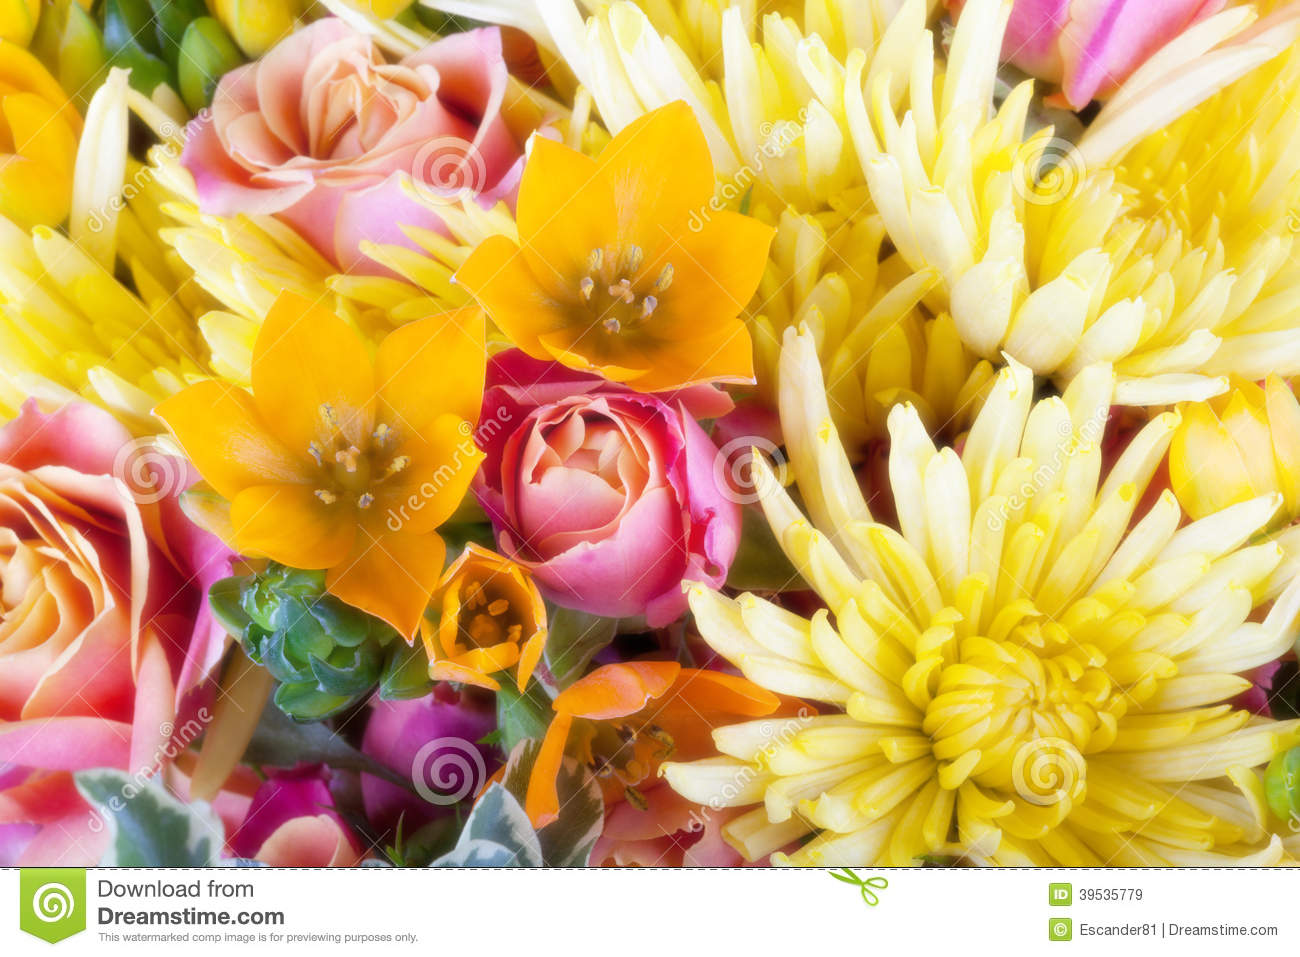 Amazing close up of a flower bouquet stock image image of above amazing close up of a flower bouquet above flowers izmirmasajfo